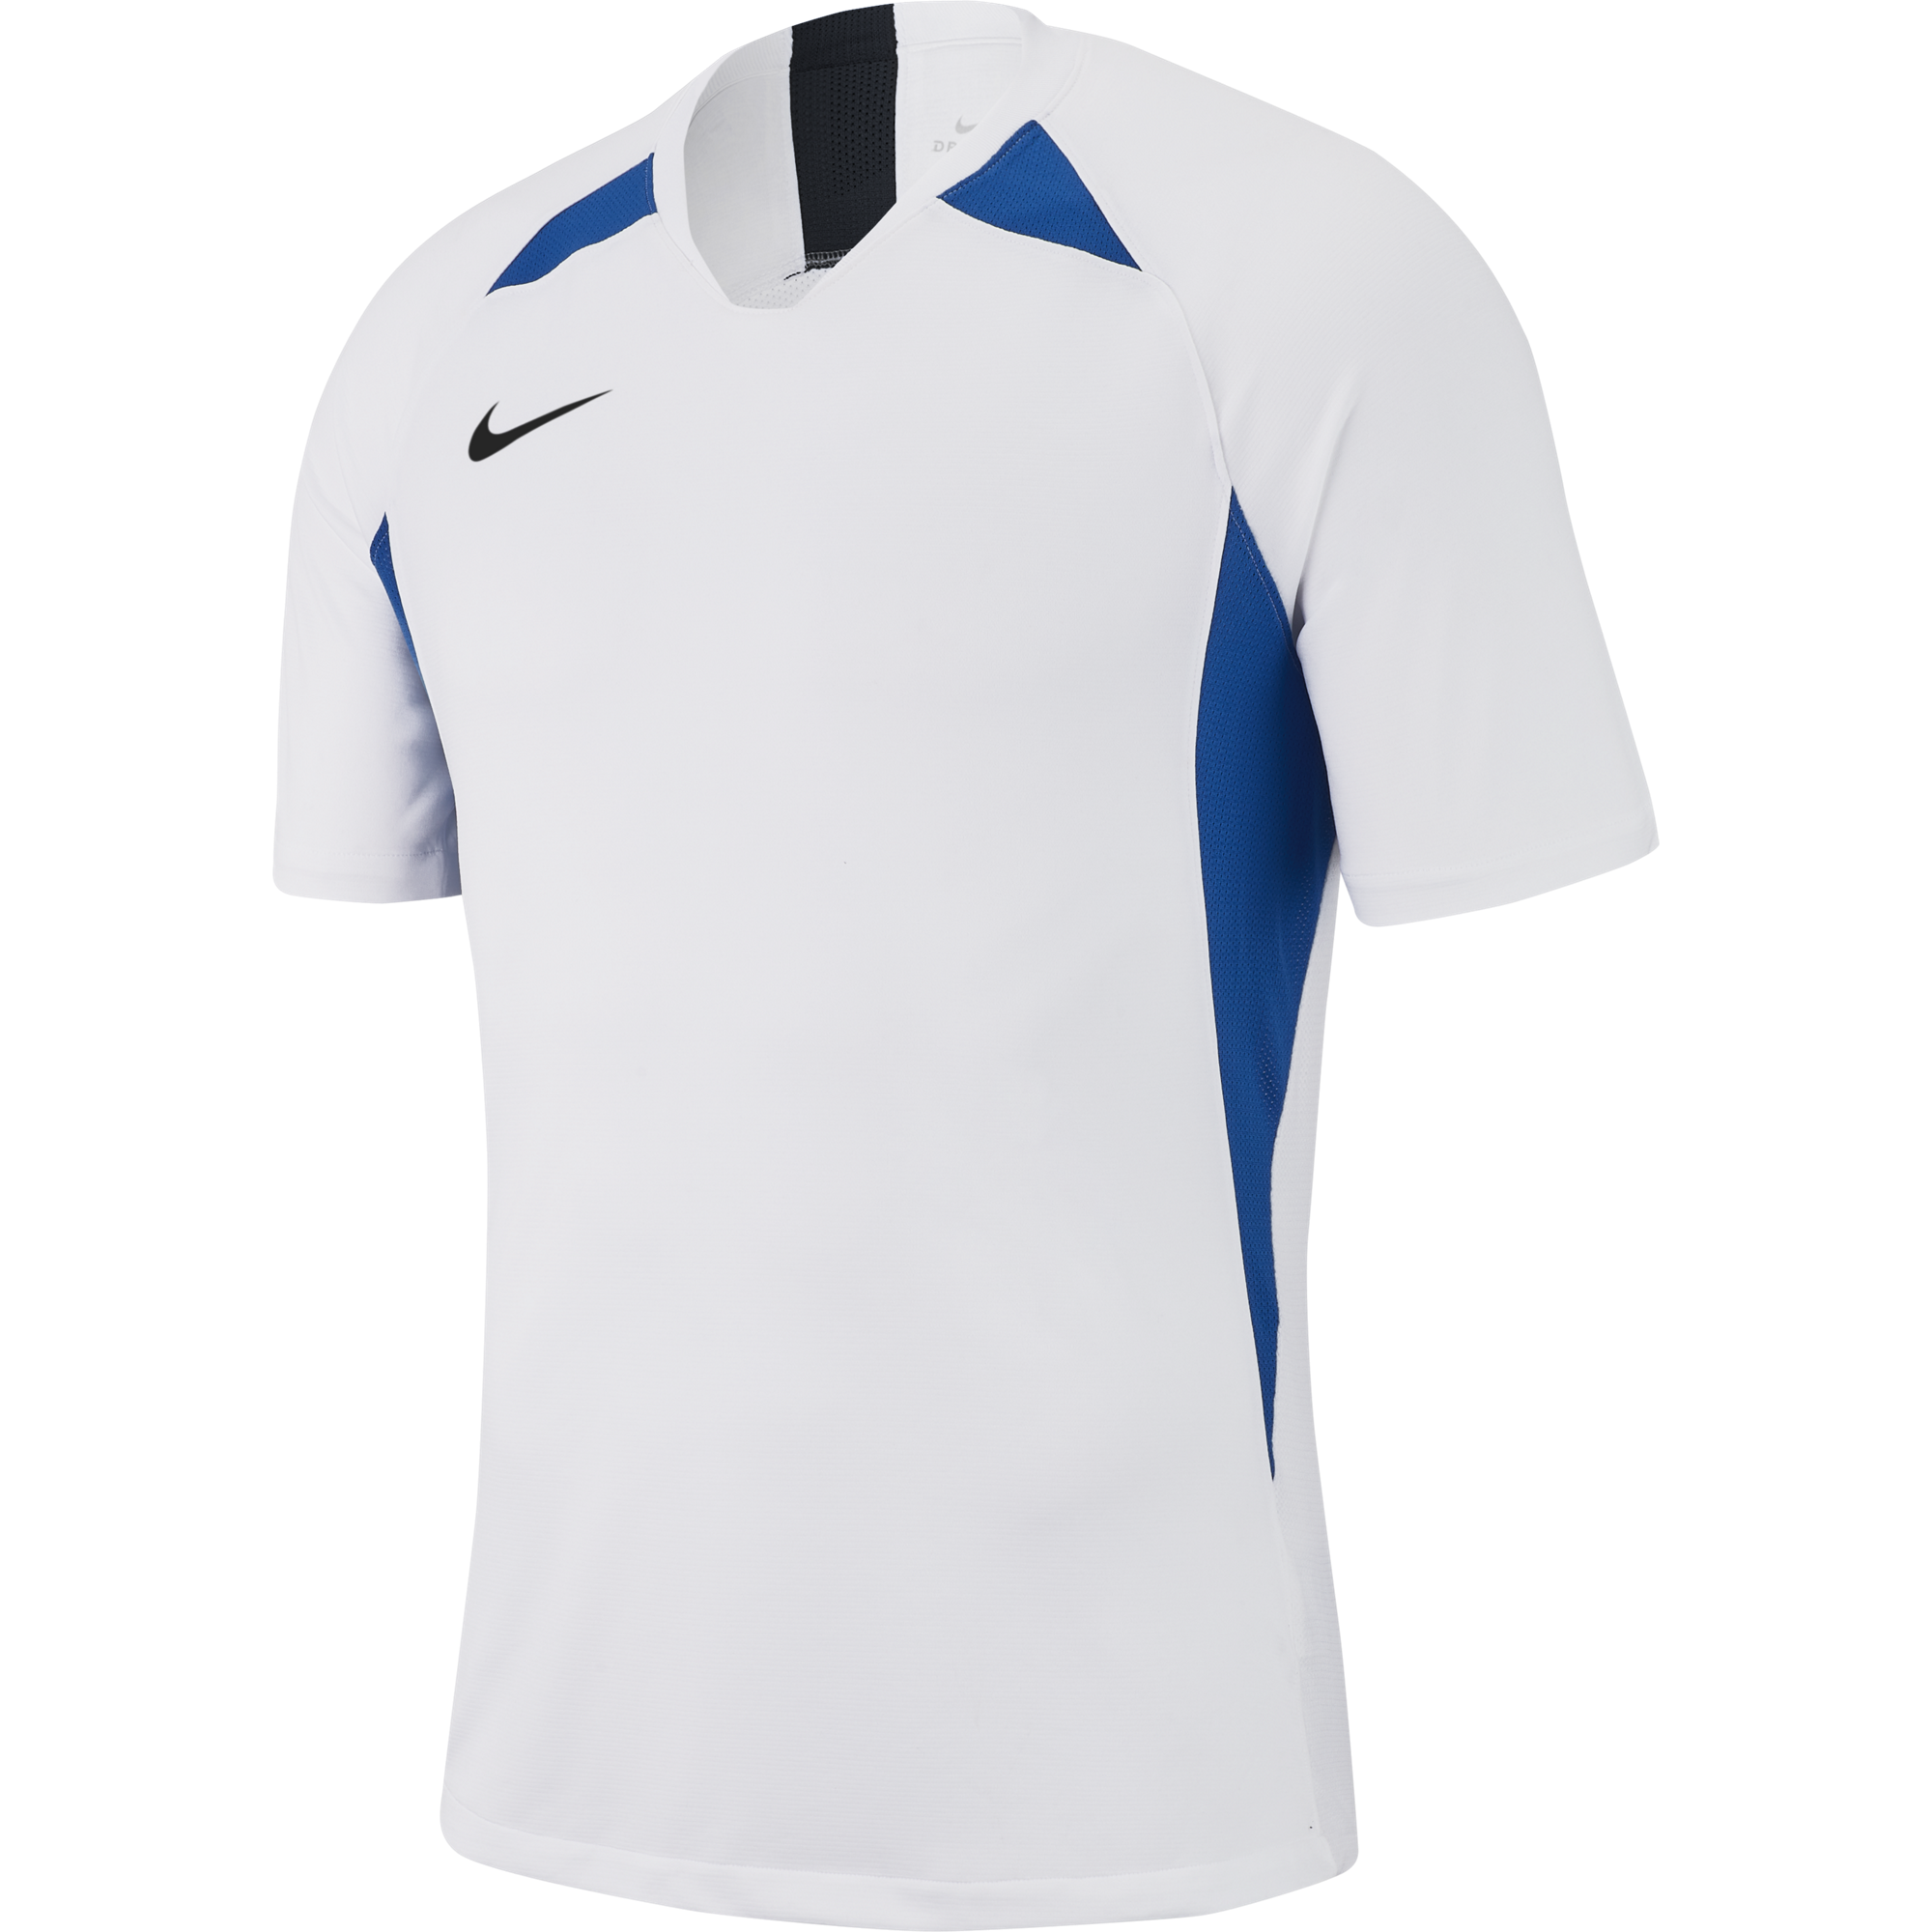 Nike Legend jersey (uni blue/white/black)